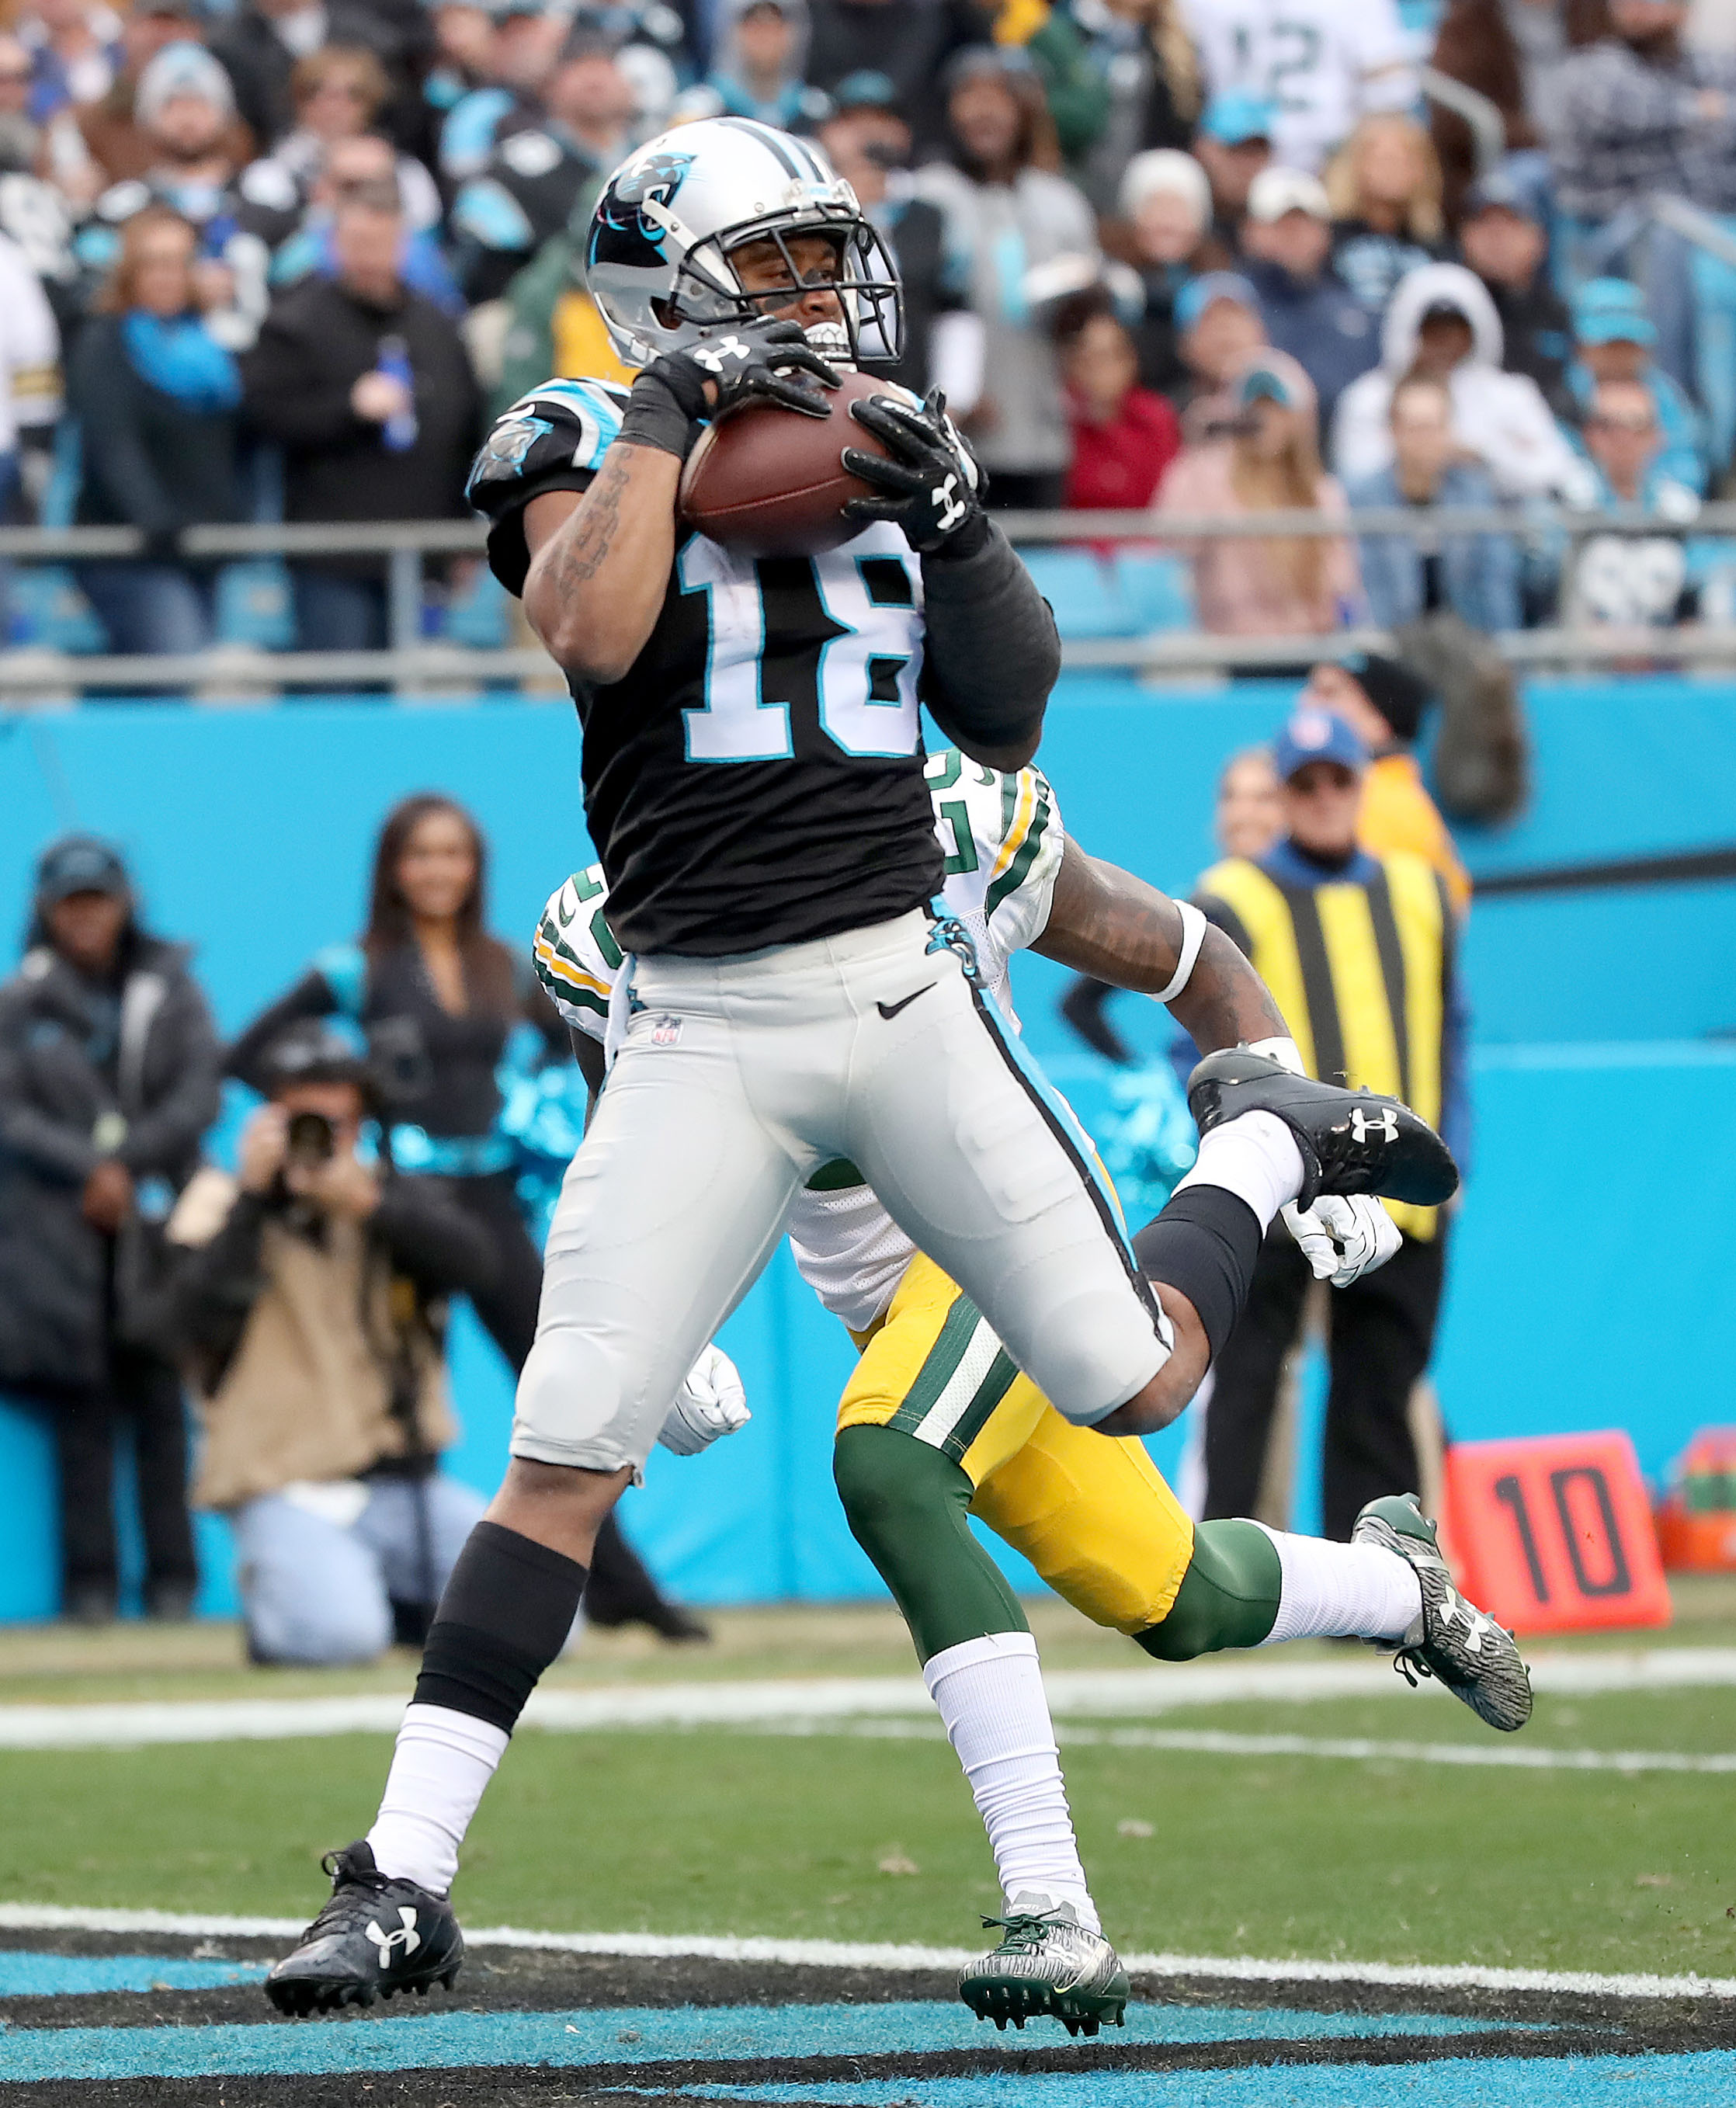 Former Gamecock Damiere Byrd landing with AFC powerhouse, report says class=